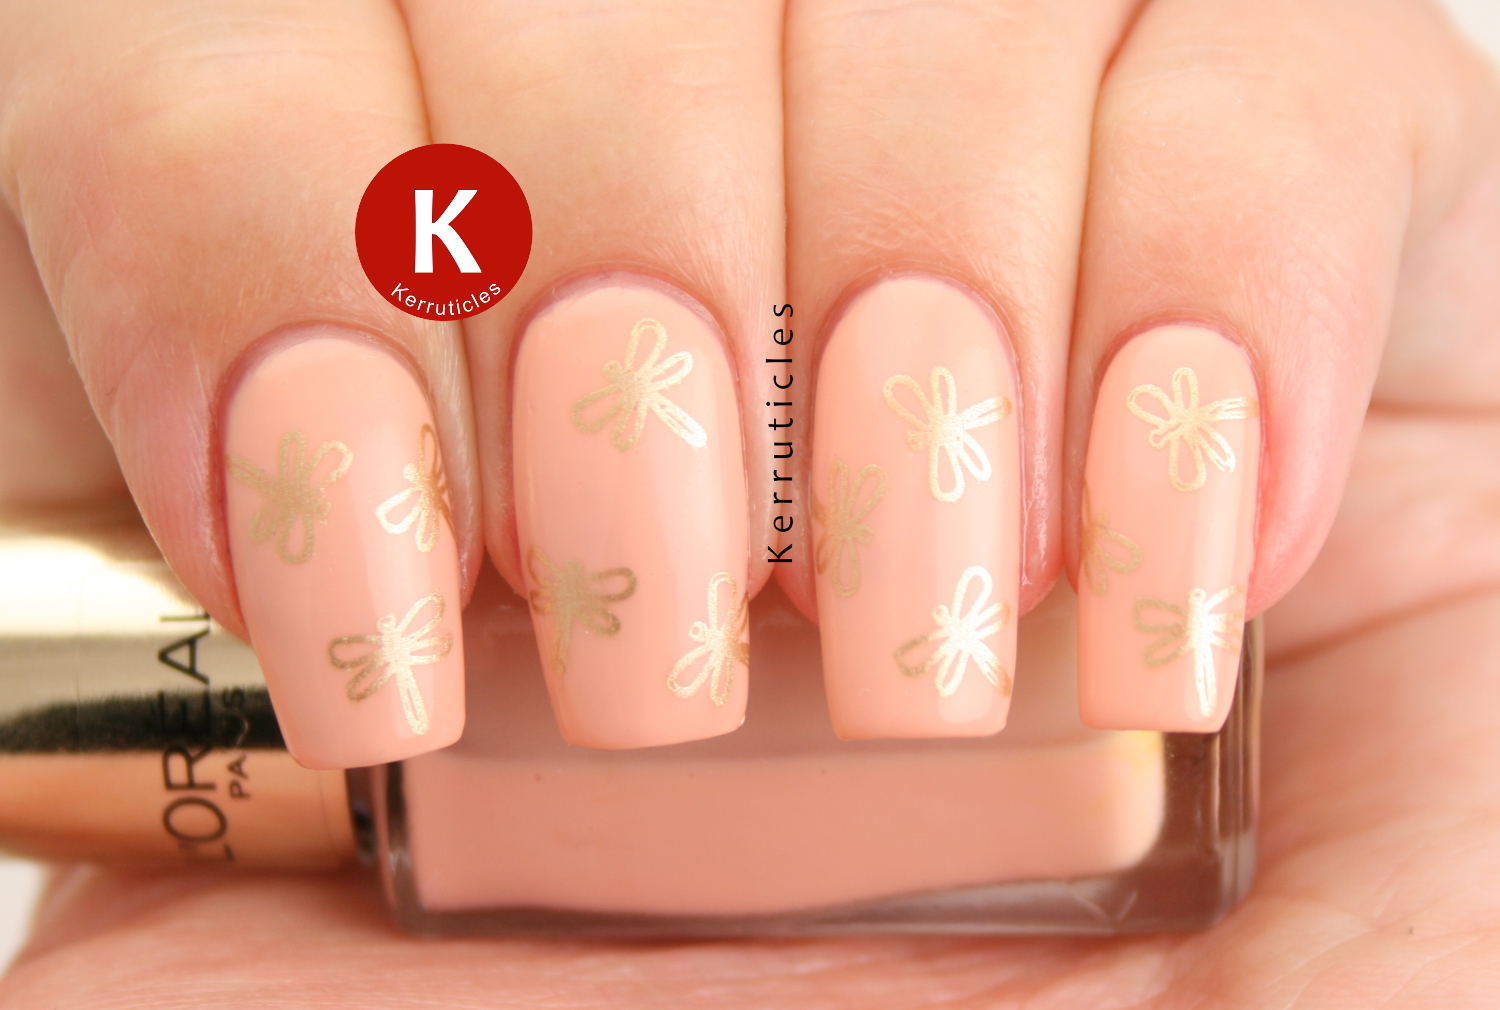 Peach dragonfly nails - Dragonfly Nails Insects 40 Great Nail Art Ideas Kerruticles